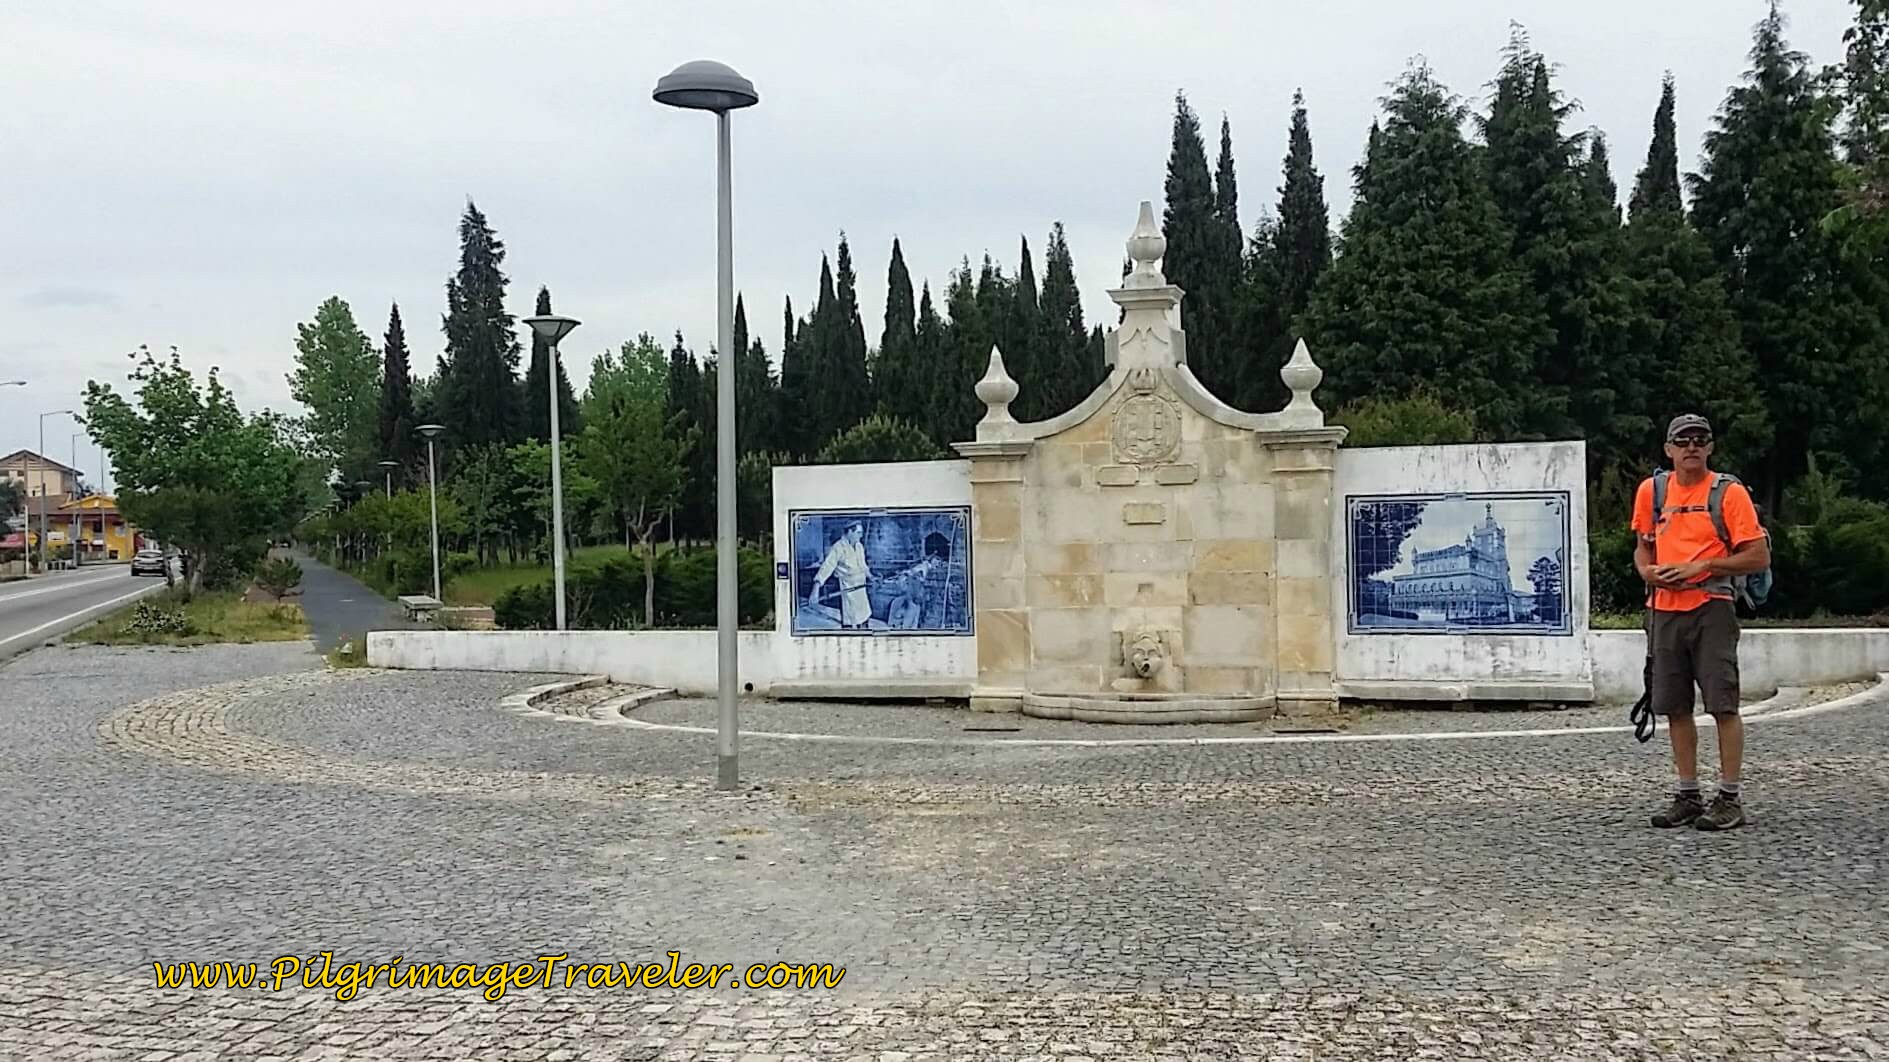 Left Turn on the Avenida Floresta by Murals on day ten of the Portuguese Way